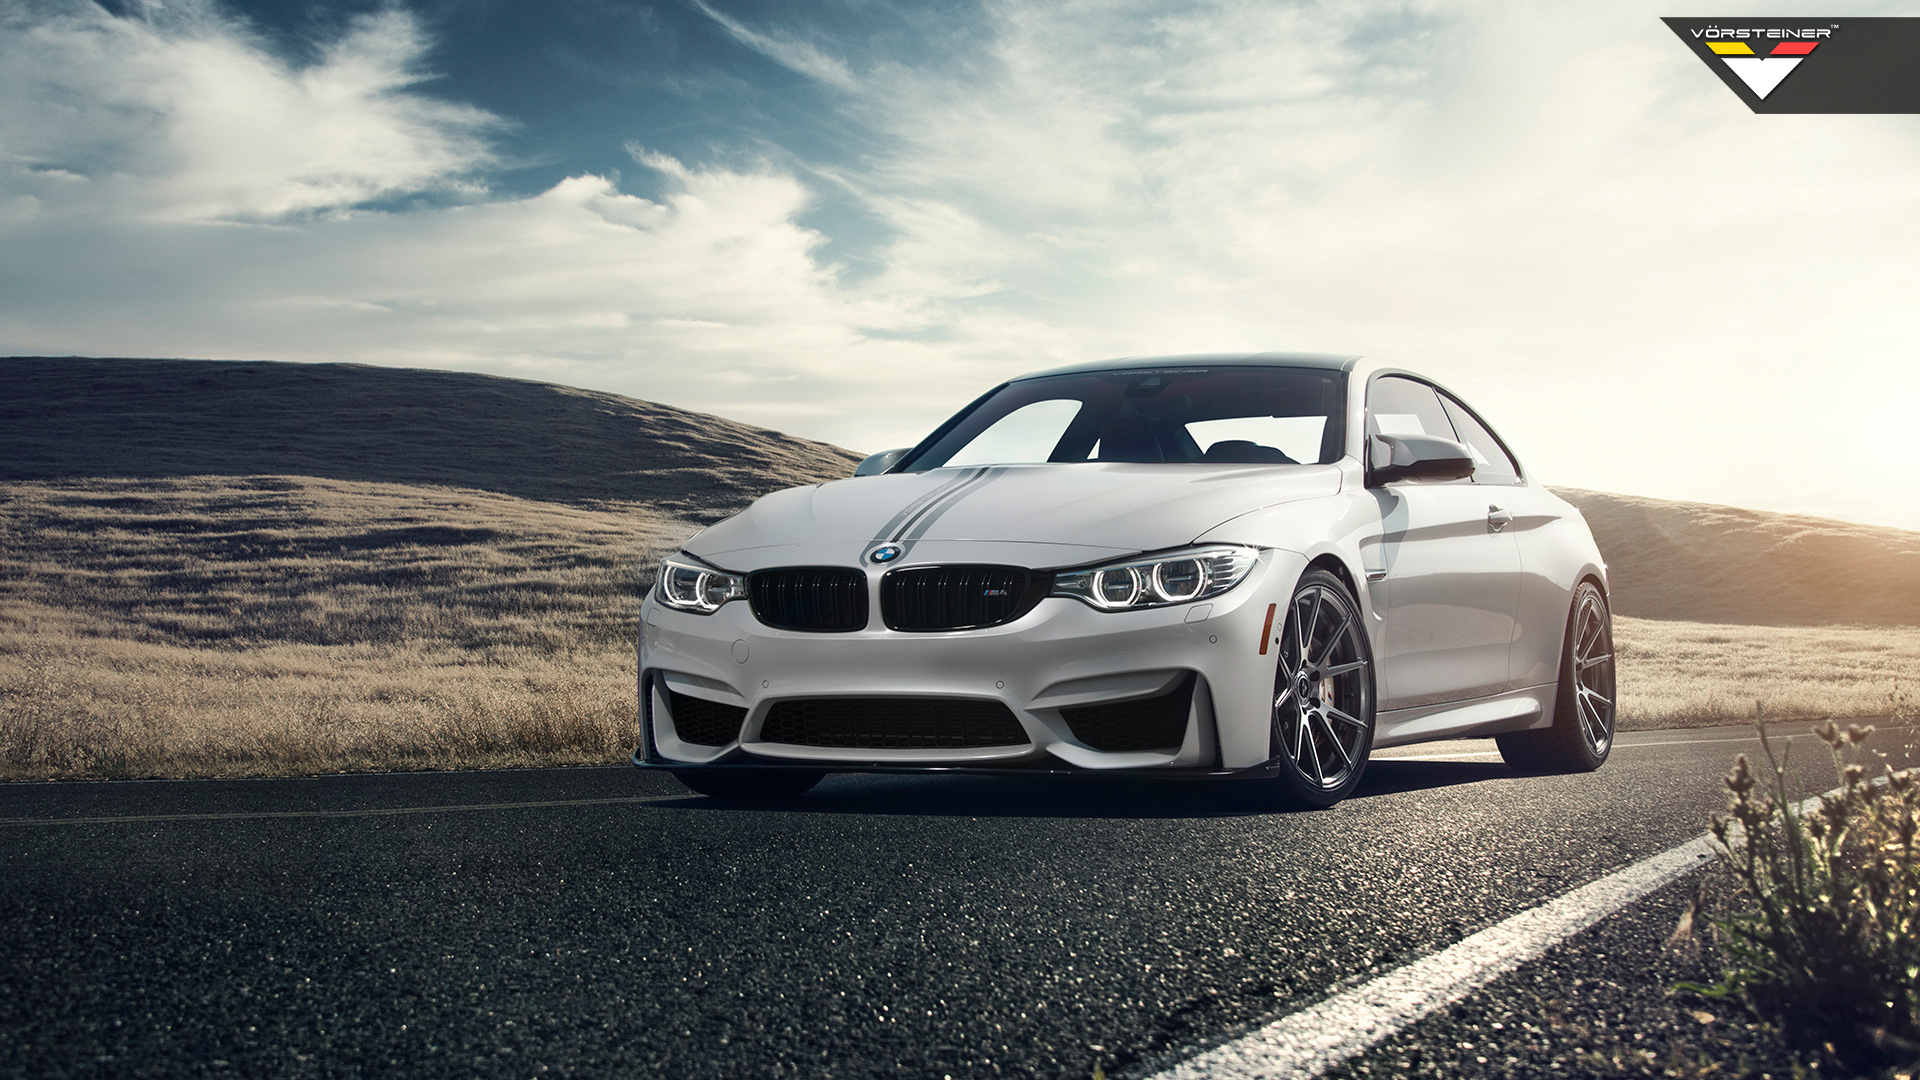 Vorsteiner BMW F82 M4 Wallpaper | HD Car Wallpapers